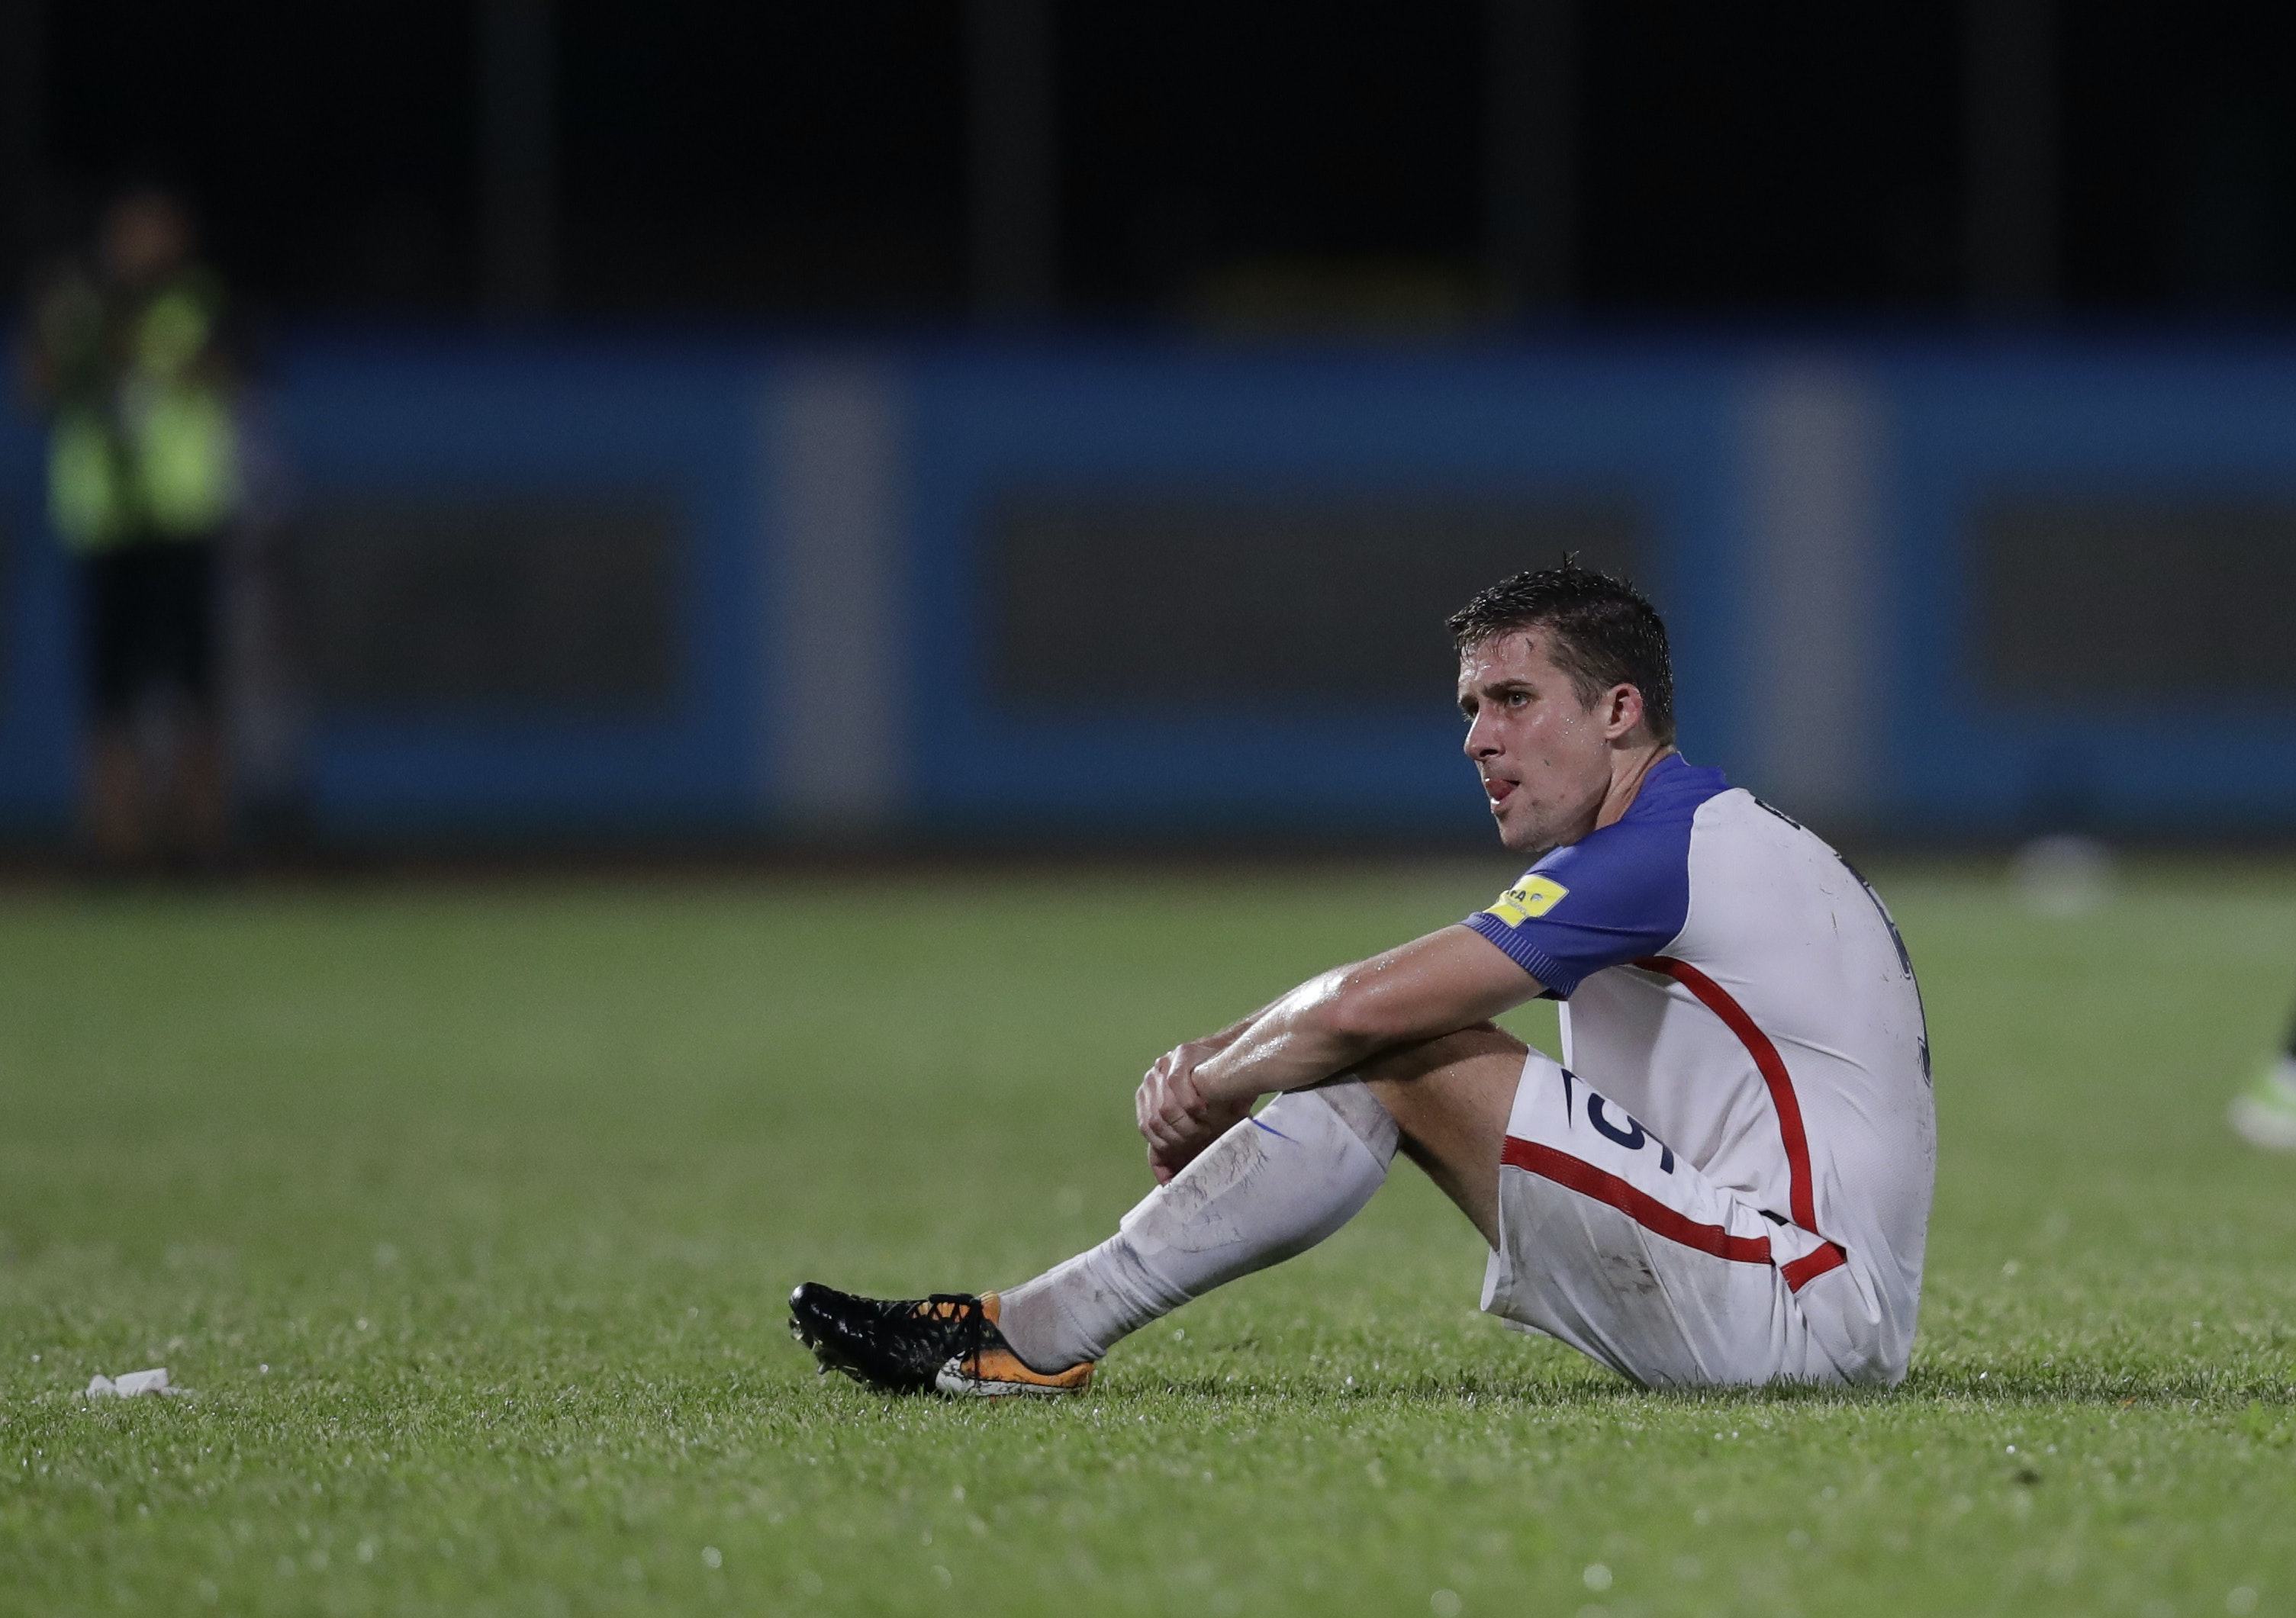 Until youth soccer is fixed, US men's national team is destined to fail